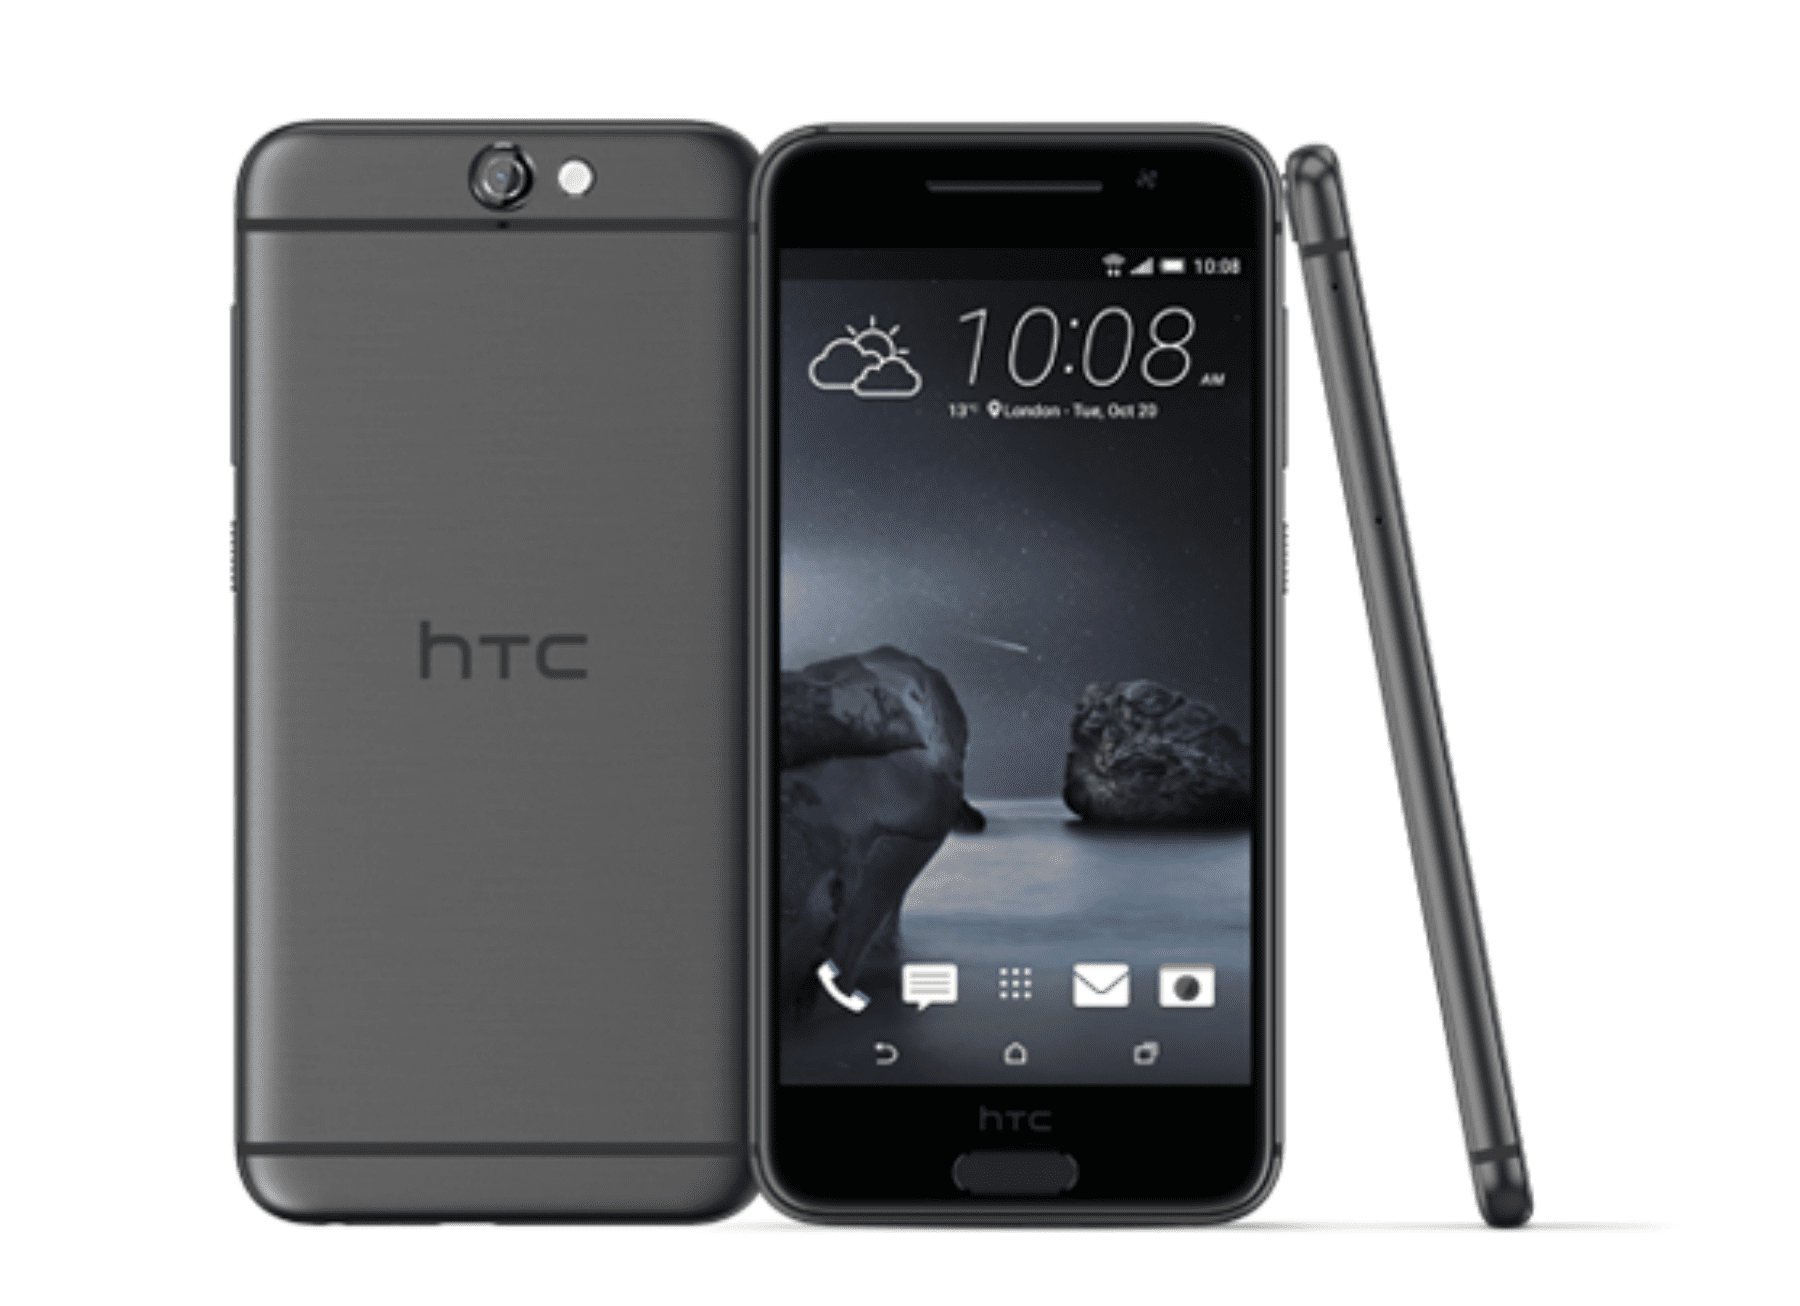 HTC One A9 smartphones, seen from back, front, and side